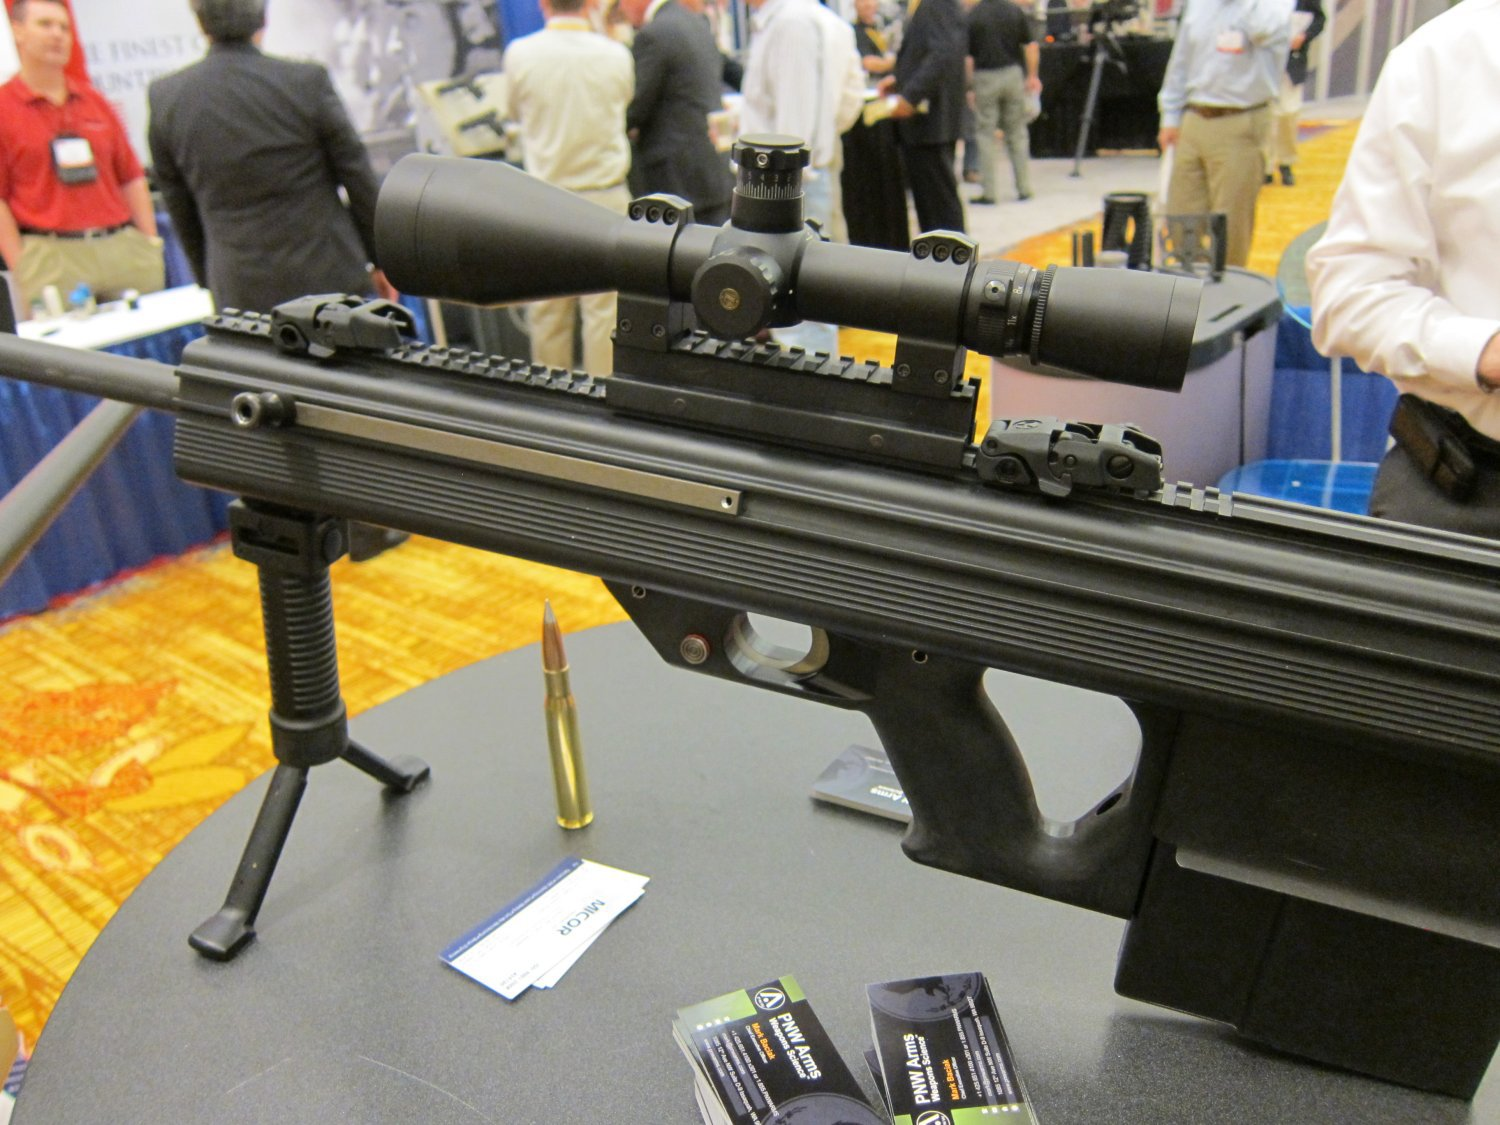 Micor Leader 50 Lightweight Bullpup Semi Auto .50 BMG Sniper Anti Materiel Rifle NDIA Small Arms Symposium 2011 DefenseReview.com DR 4 <!  :en  >MICOR Defense Leader 50 Ultra Compact, Lightweight Bullpup Semi Auto .50 BMG (12.7x99mm NATO) Sniper/Anti Materiel Rifle and PNW Arms Weapons Science .50BMG Ammo at NDIA Infantry Small Arms Systems Symposium 2011: Potential Long Range Lethality Game Changer Combo for 21st Century Infantry Warfare (Photos and Video!)<!  :  >